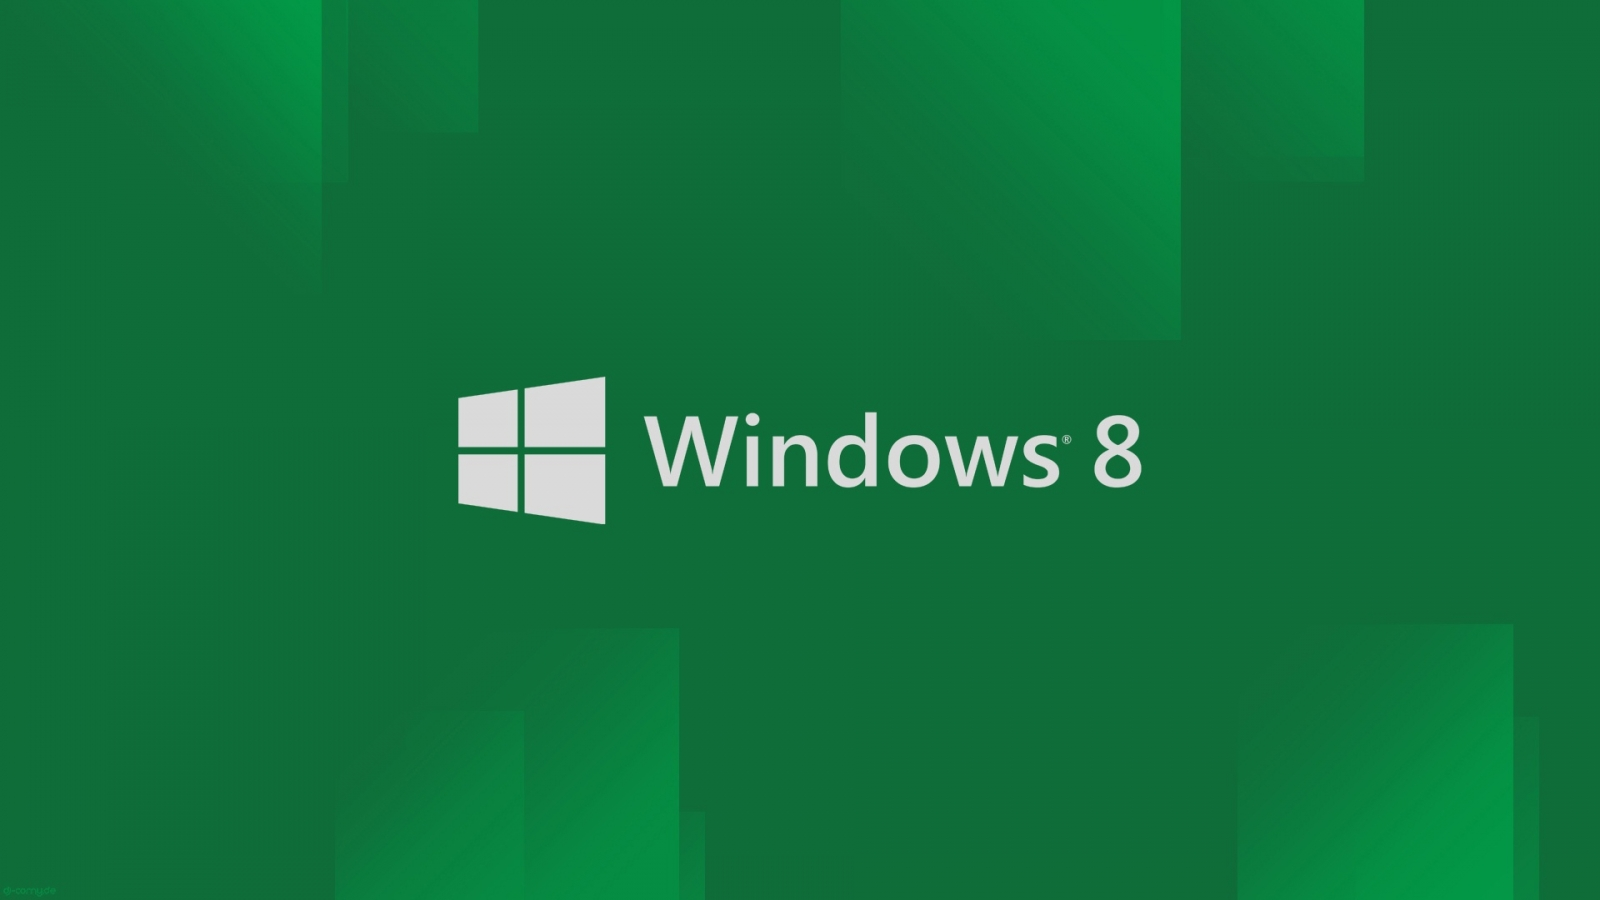 windows 8 wallpapers 13 - [1600 x 900]